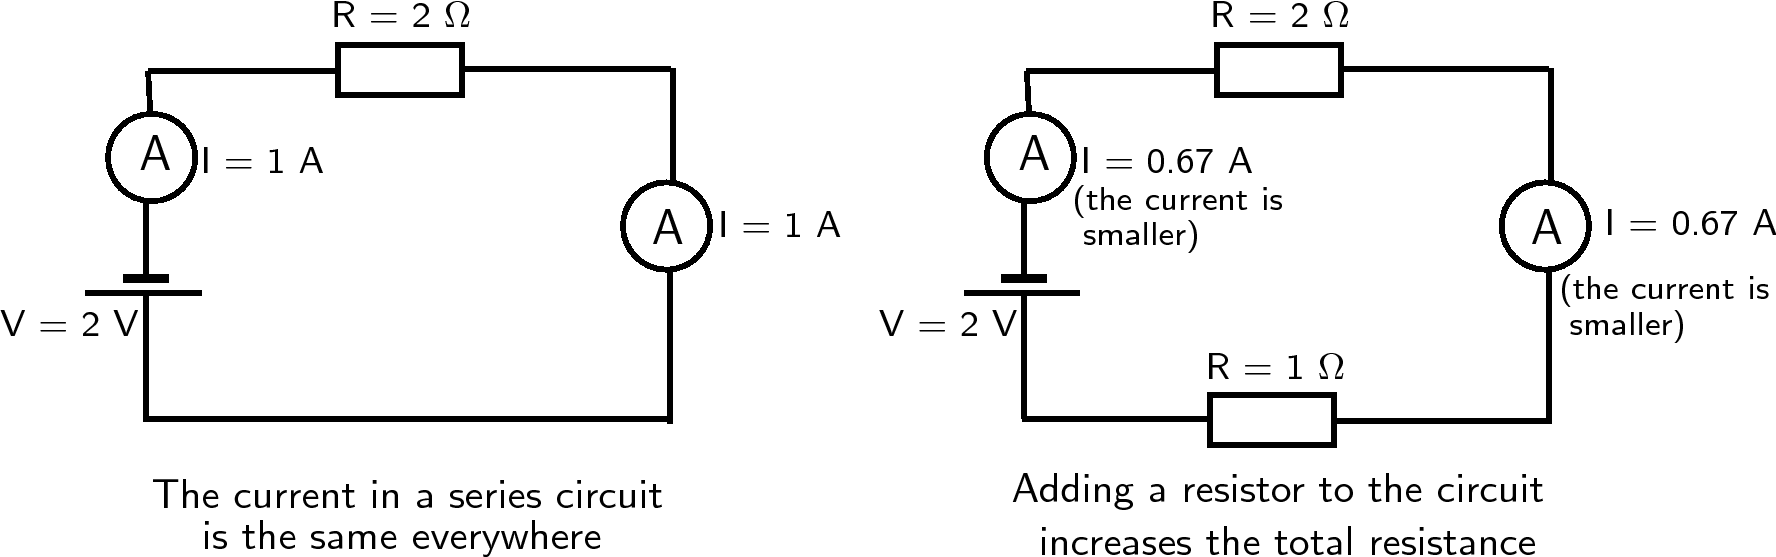 010 Electric Circuits Physics Grade 10 Caps 2011 By Openstax Resistors What Is The Equivalent Resistance Of Circuit Below Potential Difference And In Series